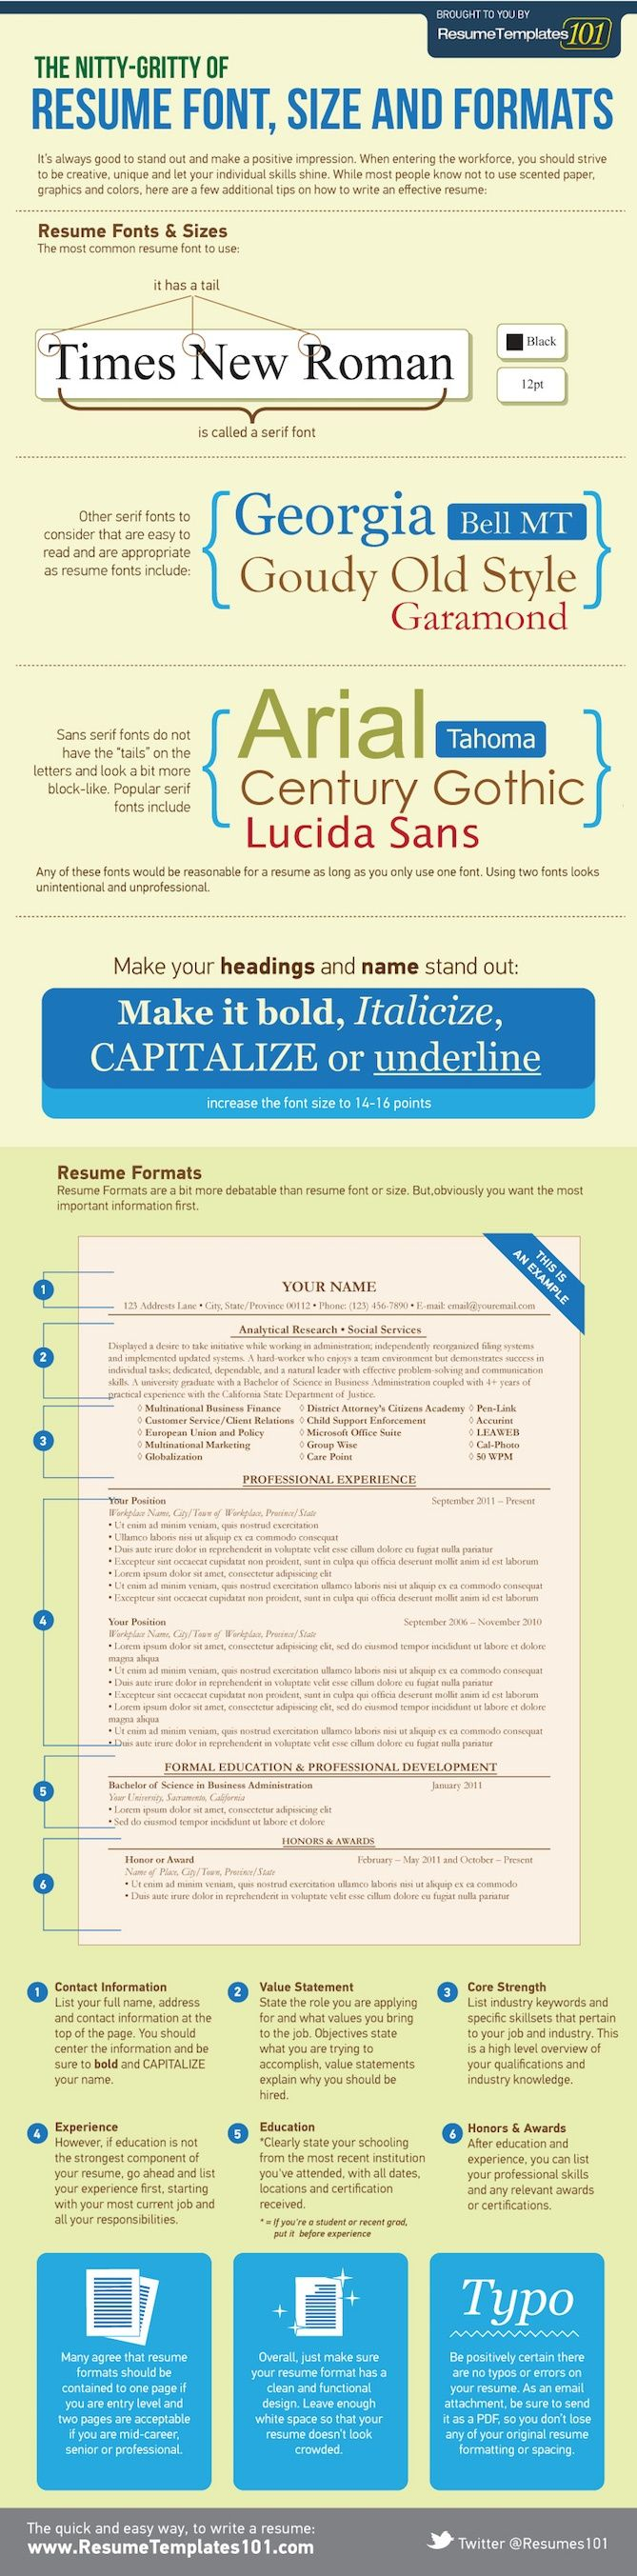 how to properly format your resume infographic via hubspot